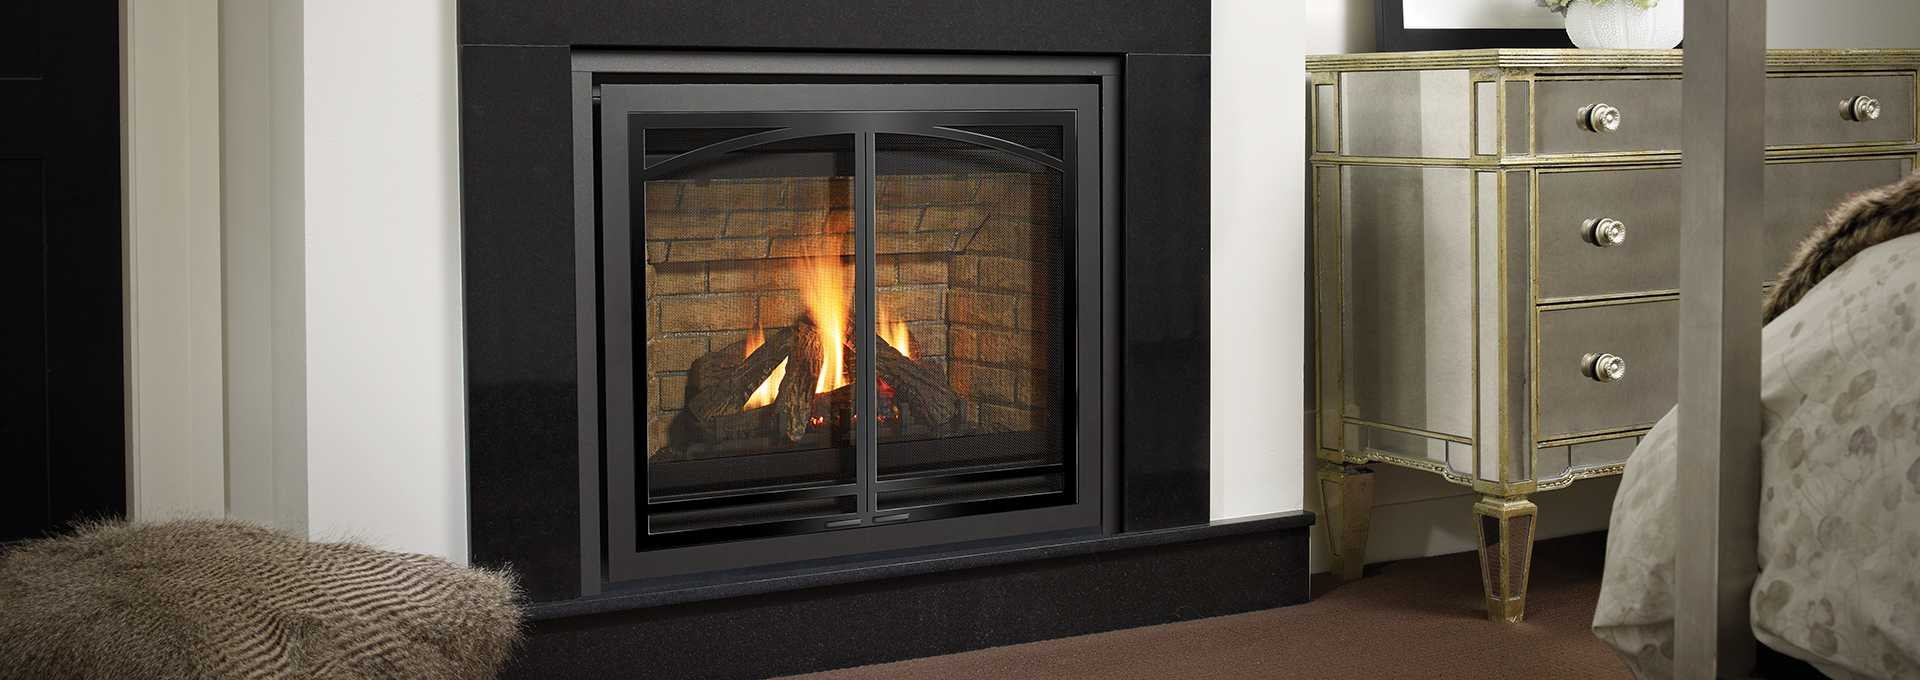 abr youtube warehouse replacement the vent b watch fireplace